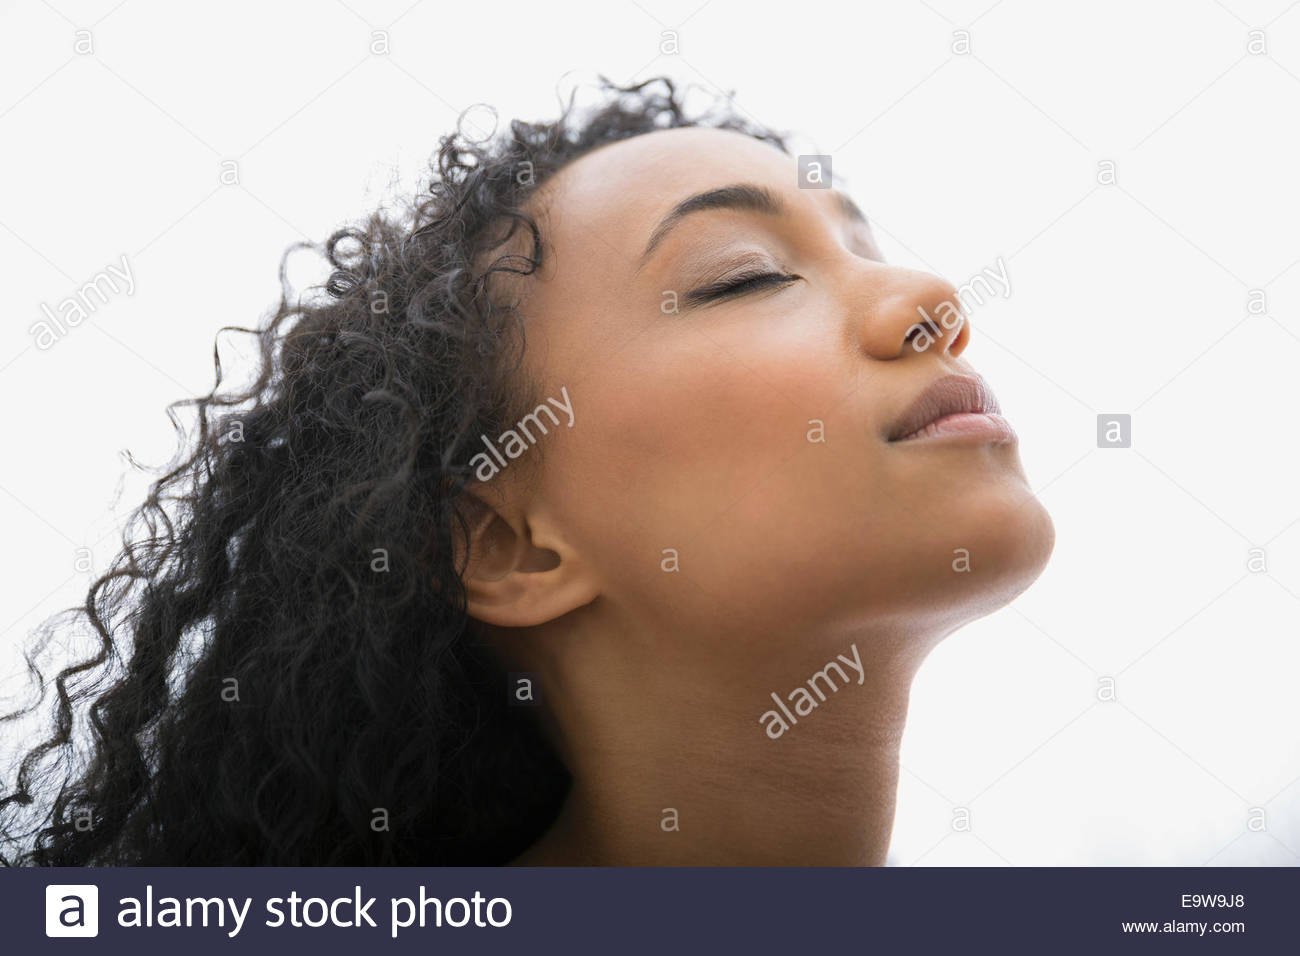 Serene woman with head back and eyes closed - Stock Image